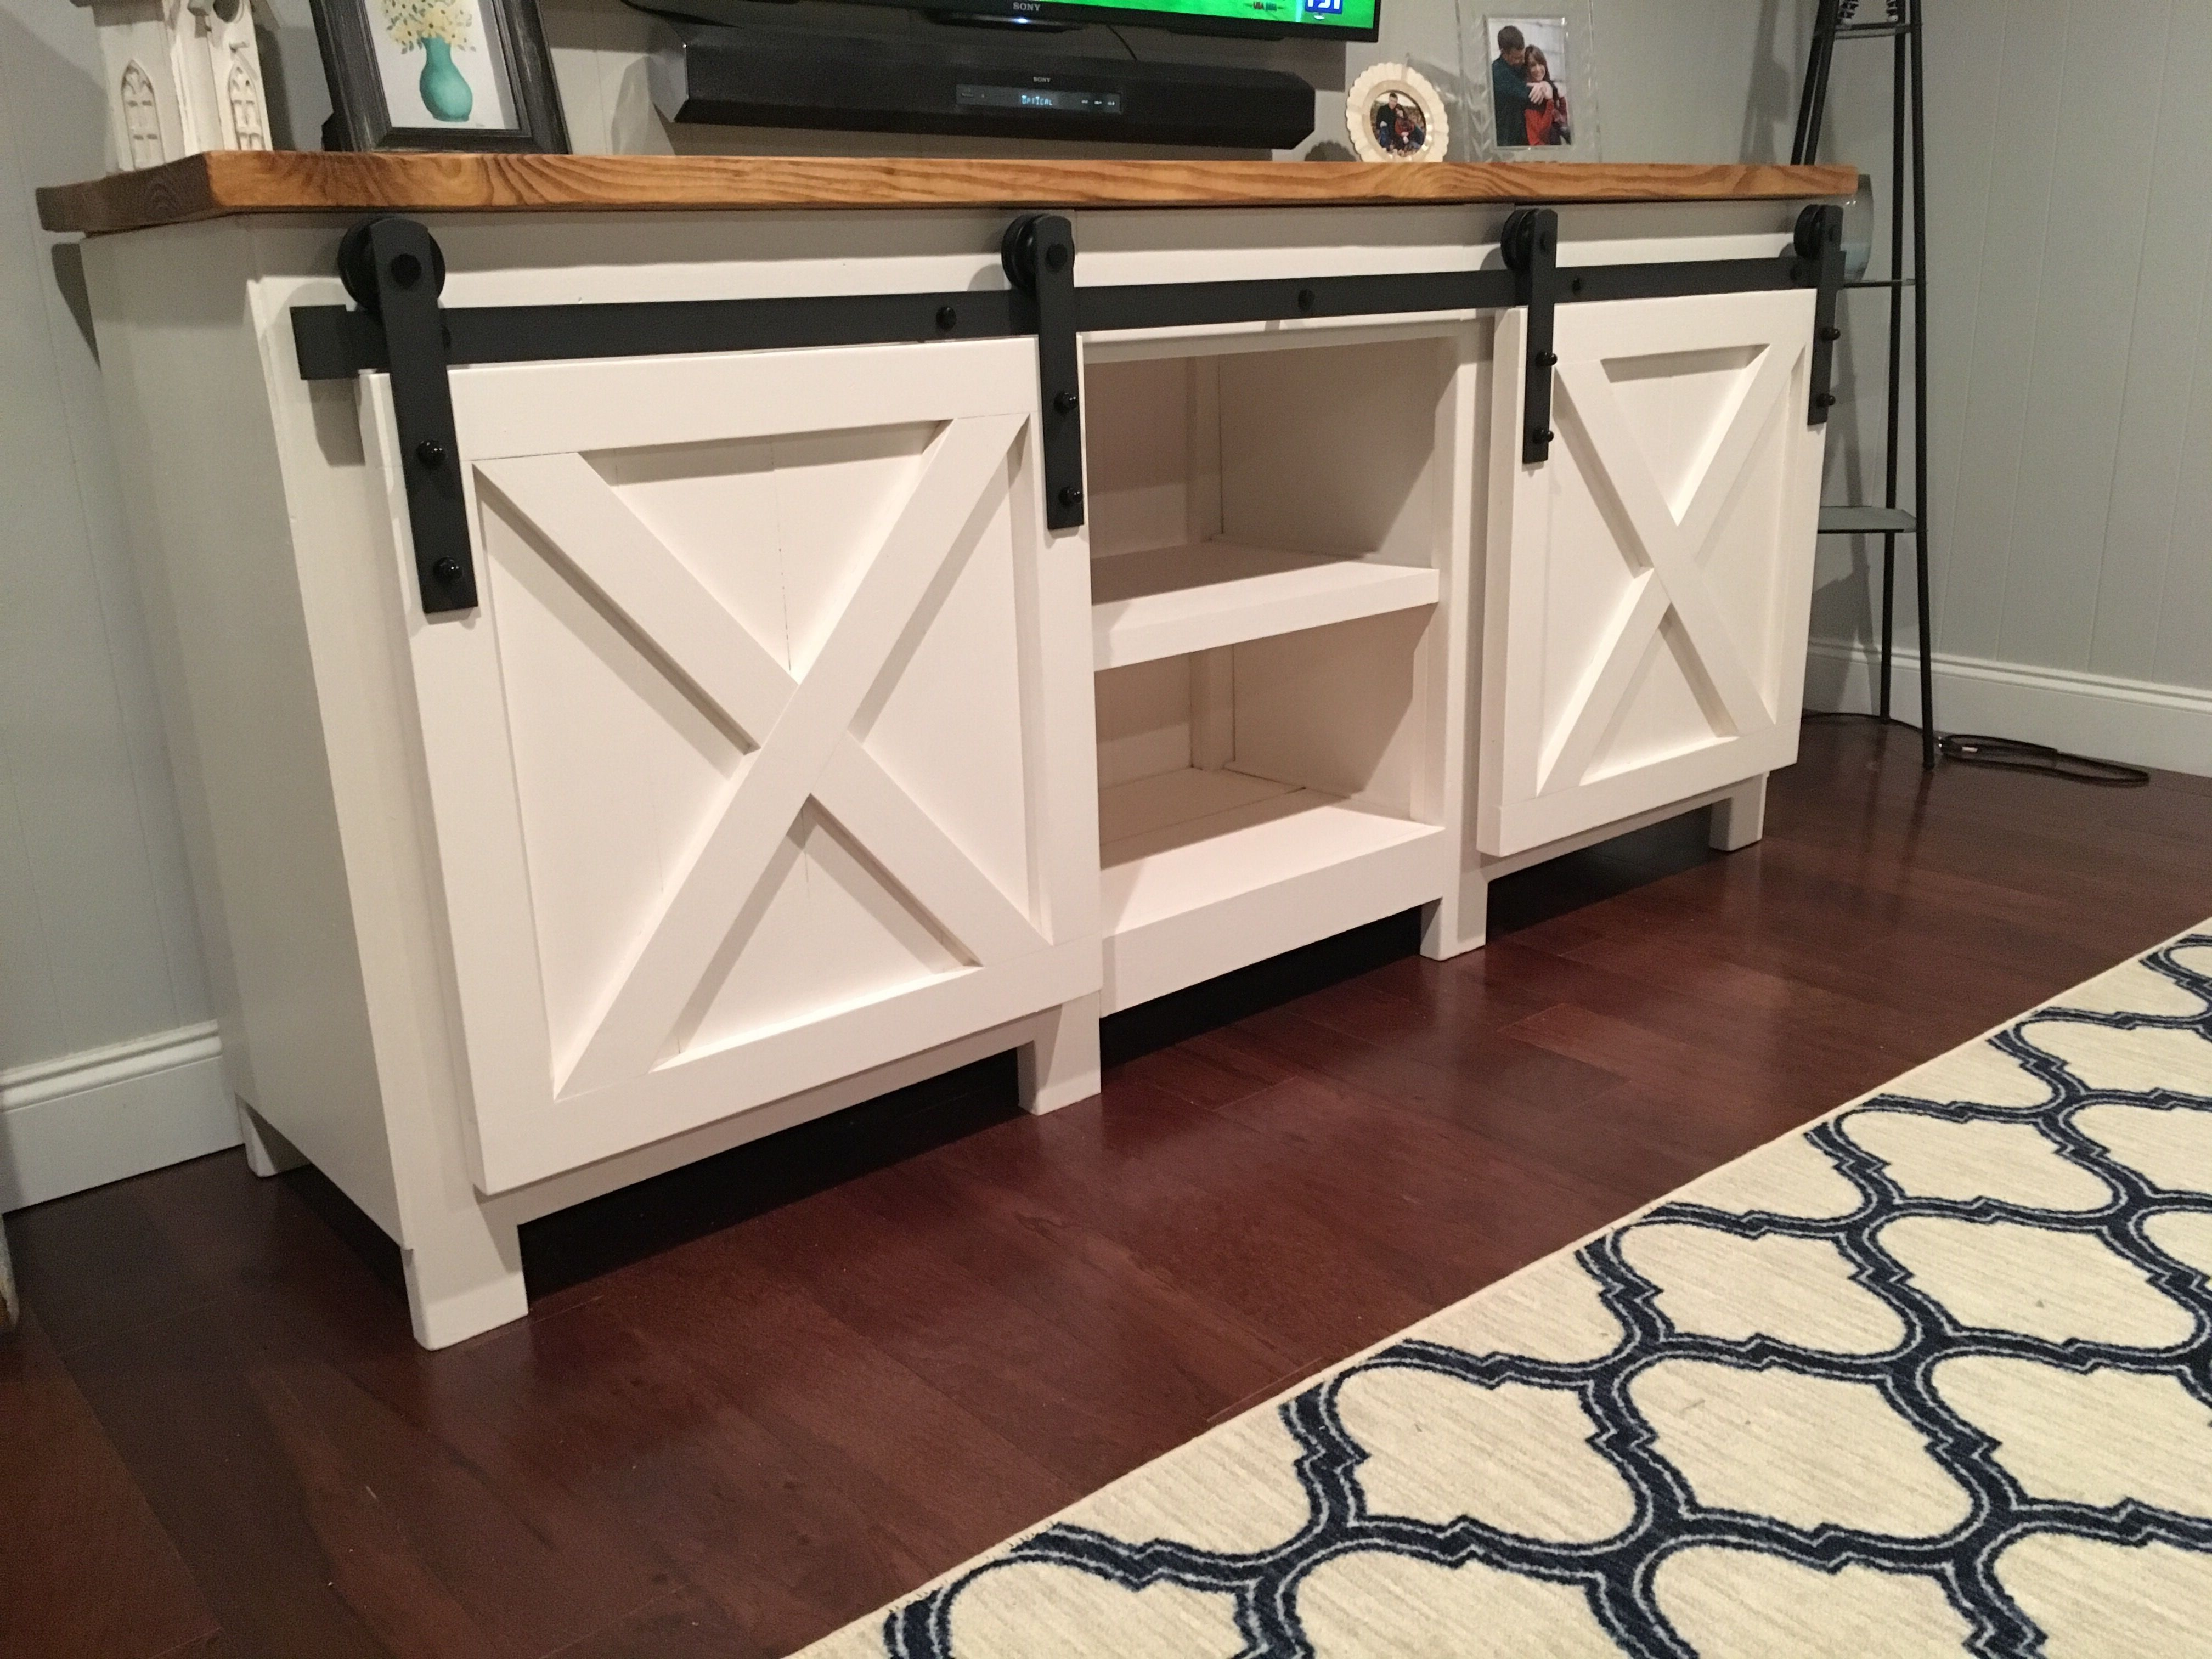 Barn Door Hardware Console Do It Yourself Home Projects From Ana